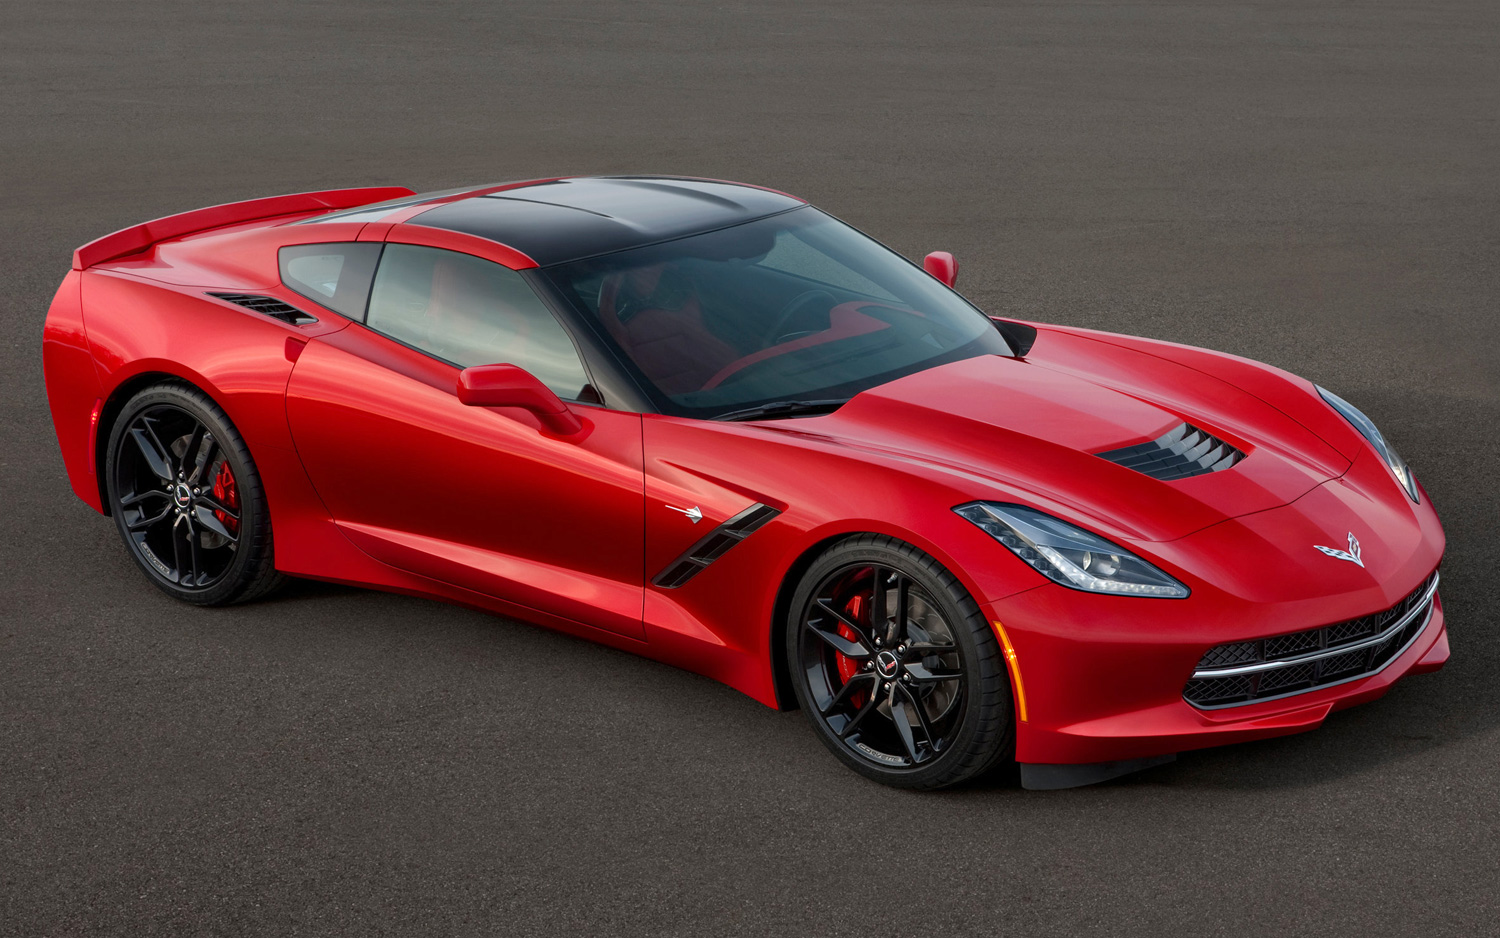 2014 Chevrolet Corvette Stingray All About Cars